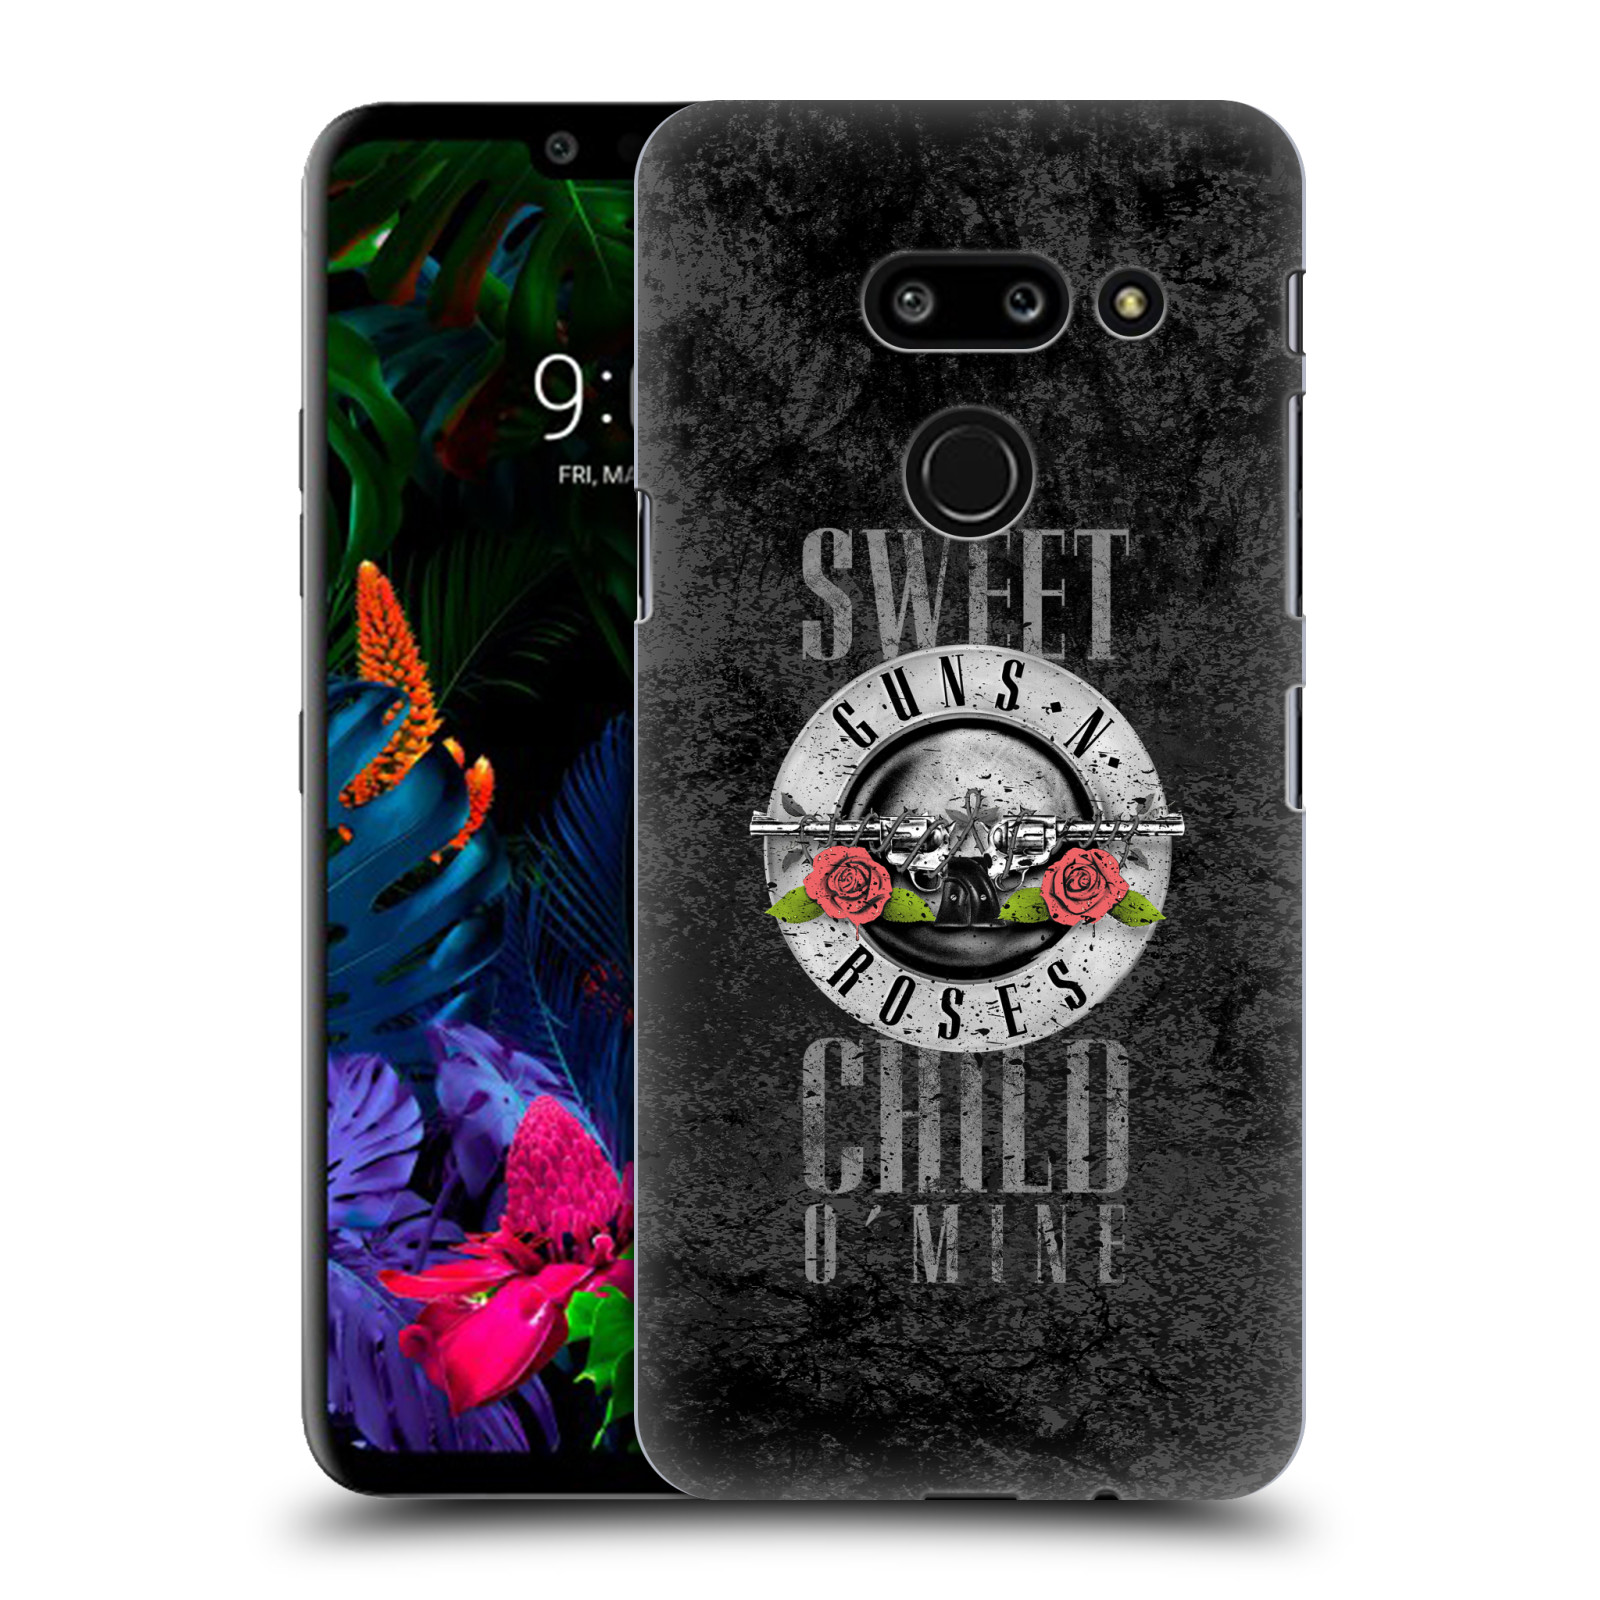 Plastové pouzdro na mobil LG G8 ThinQ - Head Case - Guns N' Roses - Sweet Child